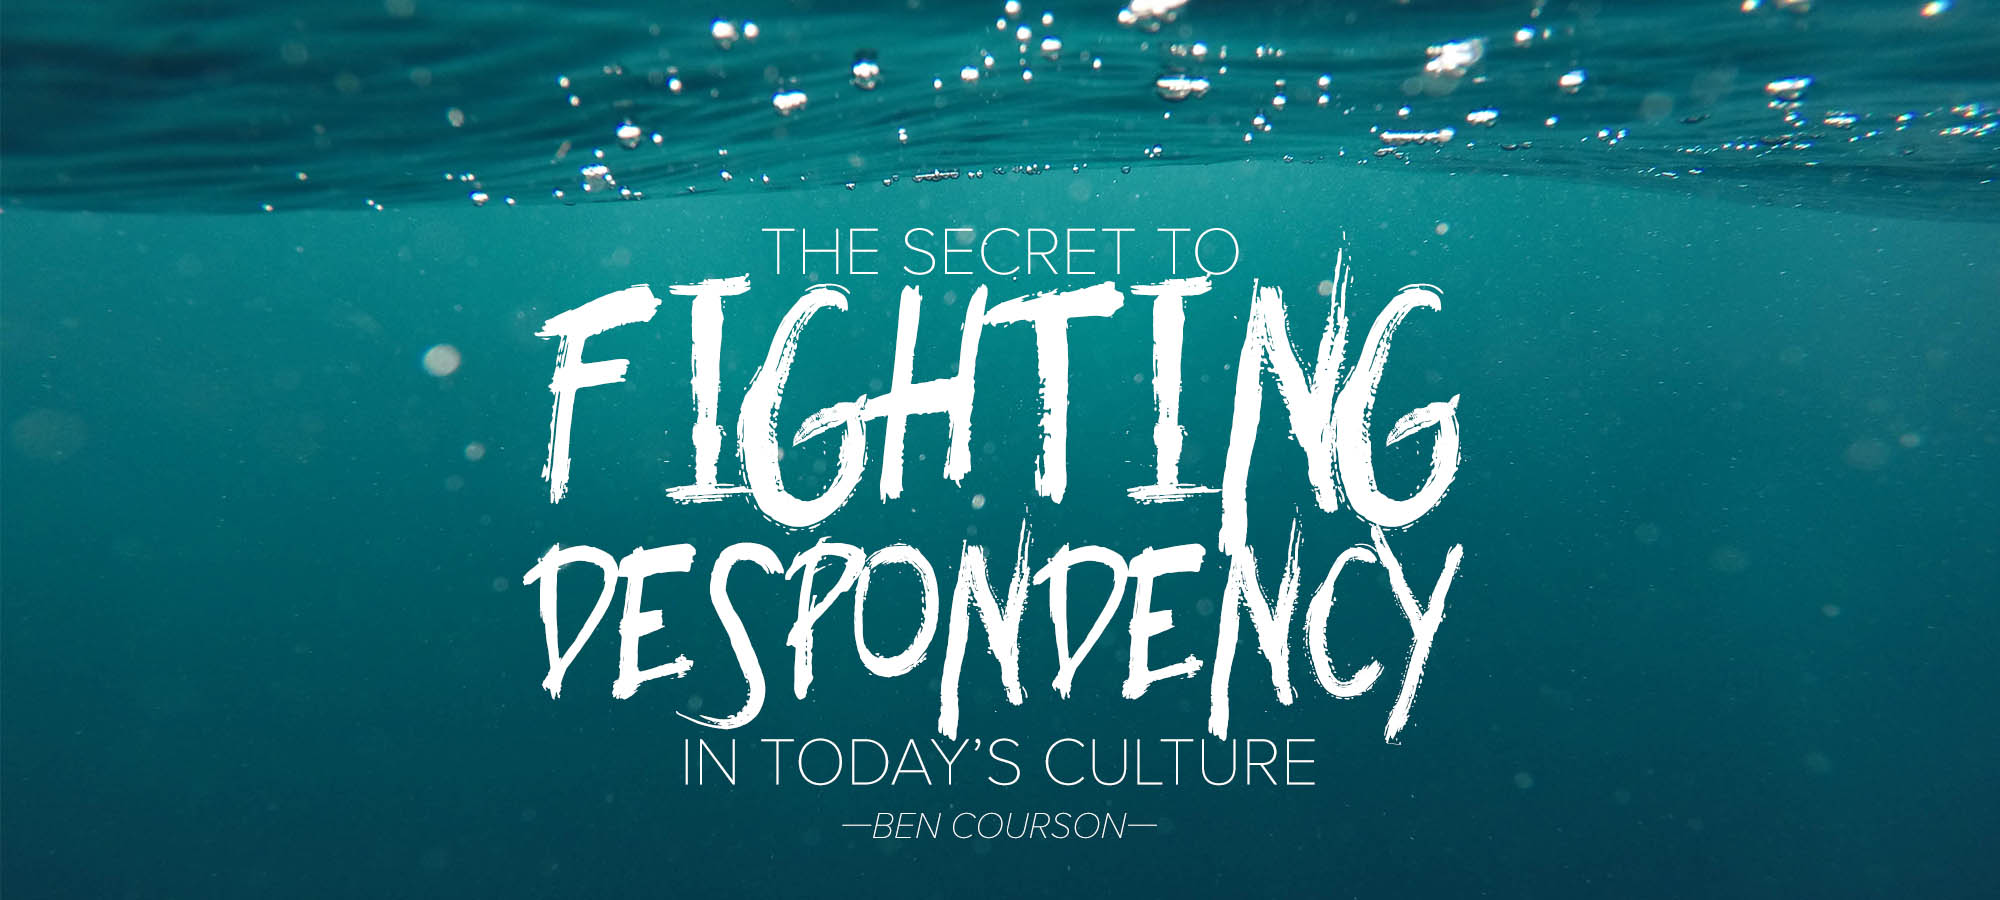 The Secret to Fighting Despondency in Today's Culture